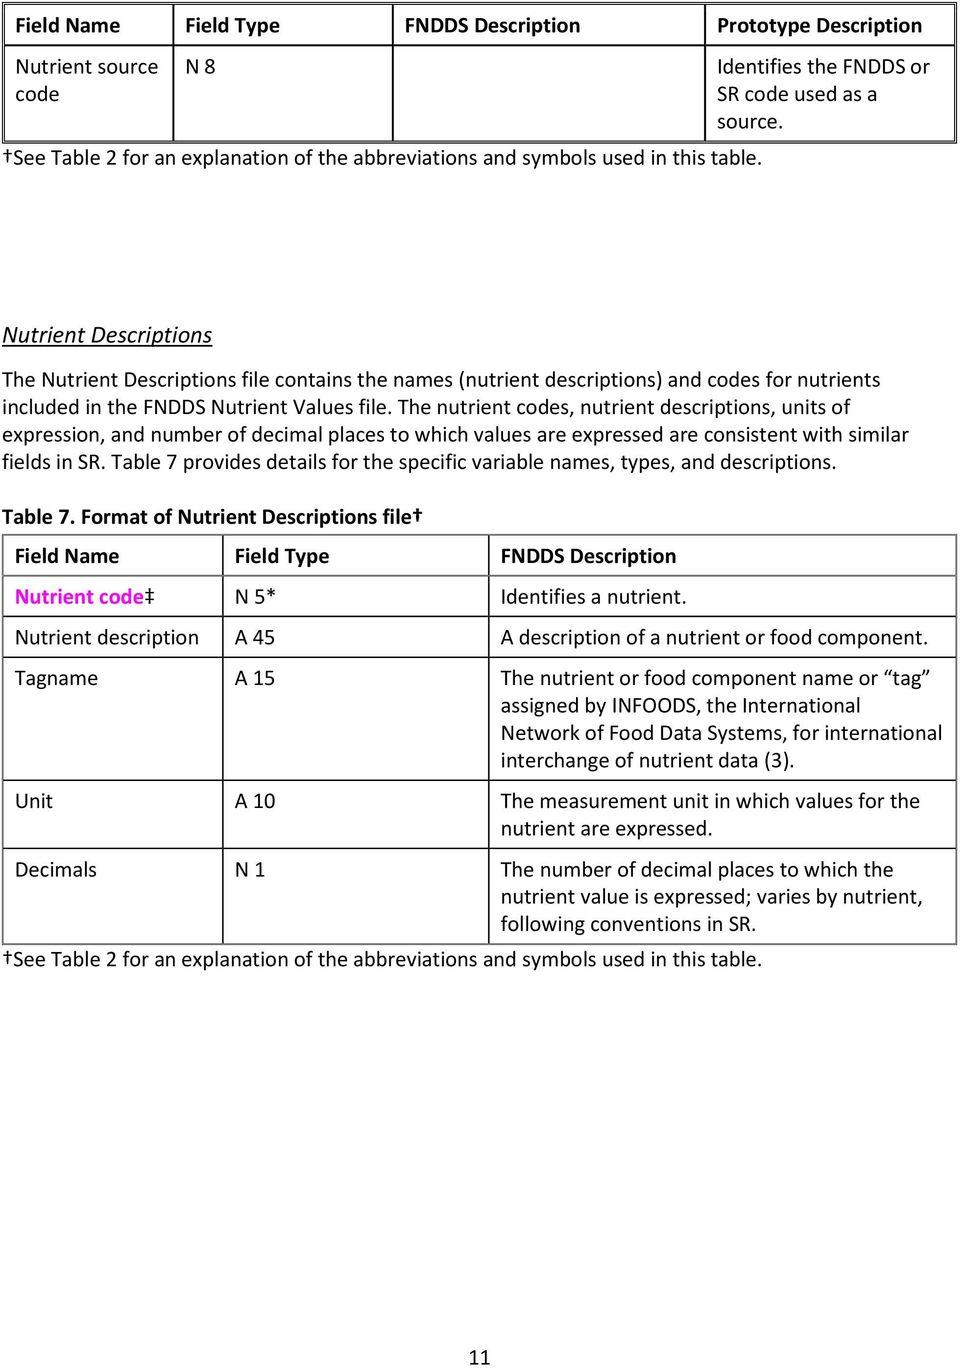 Nutrient Descriptions The Nutrient Descriptions file contains the names (nutrient descriptions) and codes for nutrients included in the FNDDS Nutrient Values file.